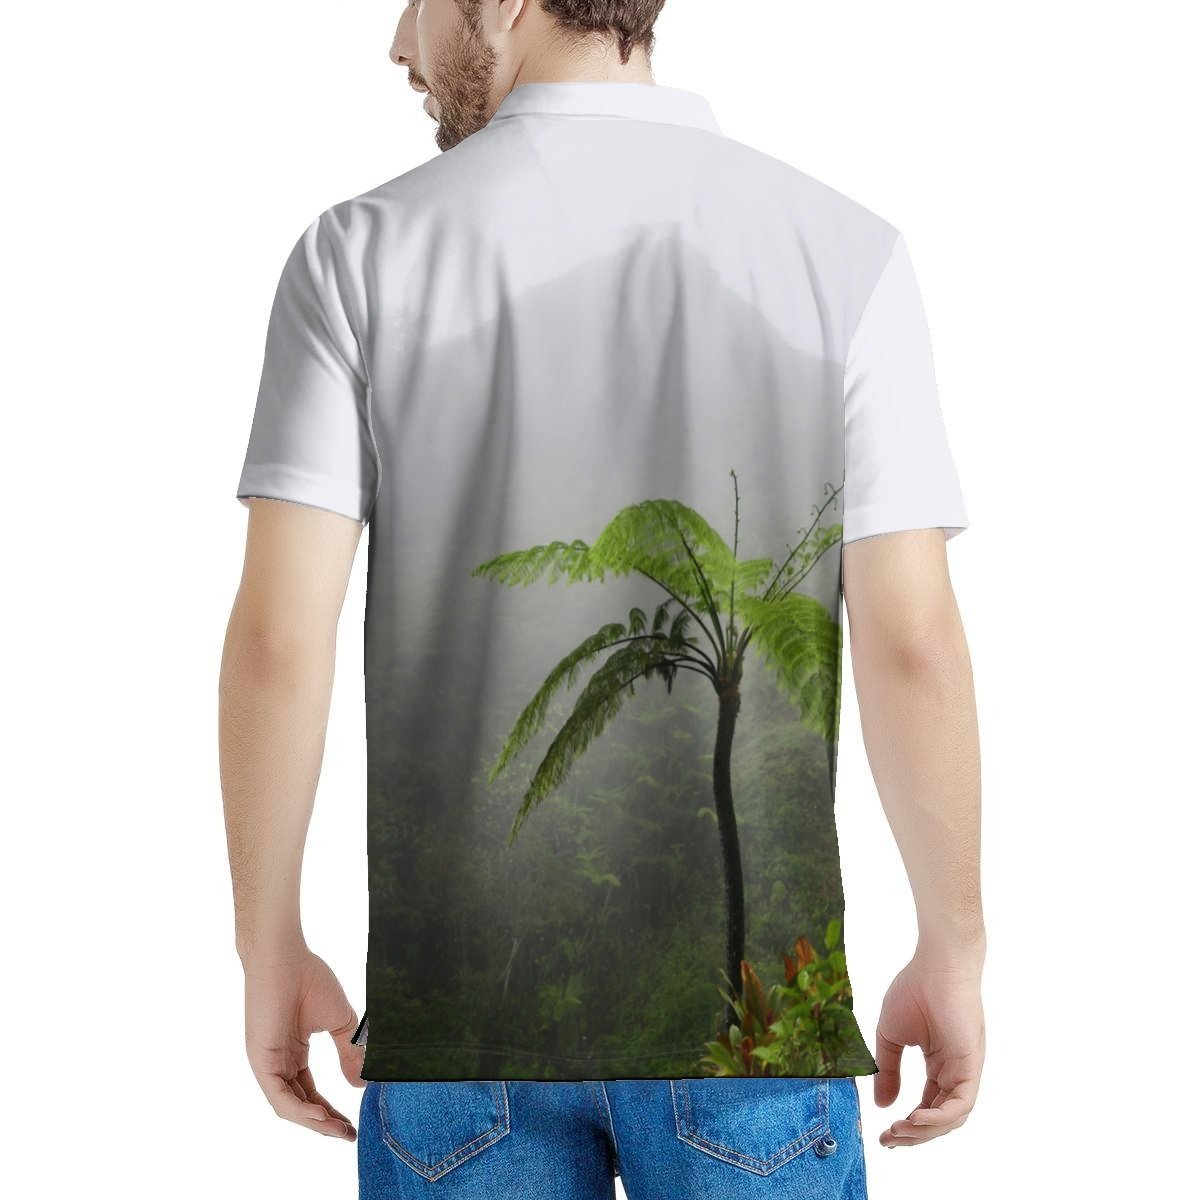 100% Pique - Men's All Over Print Polo Shirt - High Mountain Fern Palm - Toro Negro rainforest Park Over 4,000 feet altitude - Highest in Puerto Rico - Yunque Store